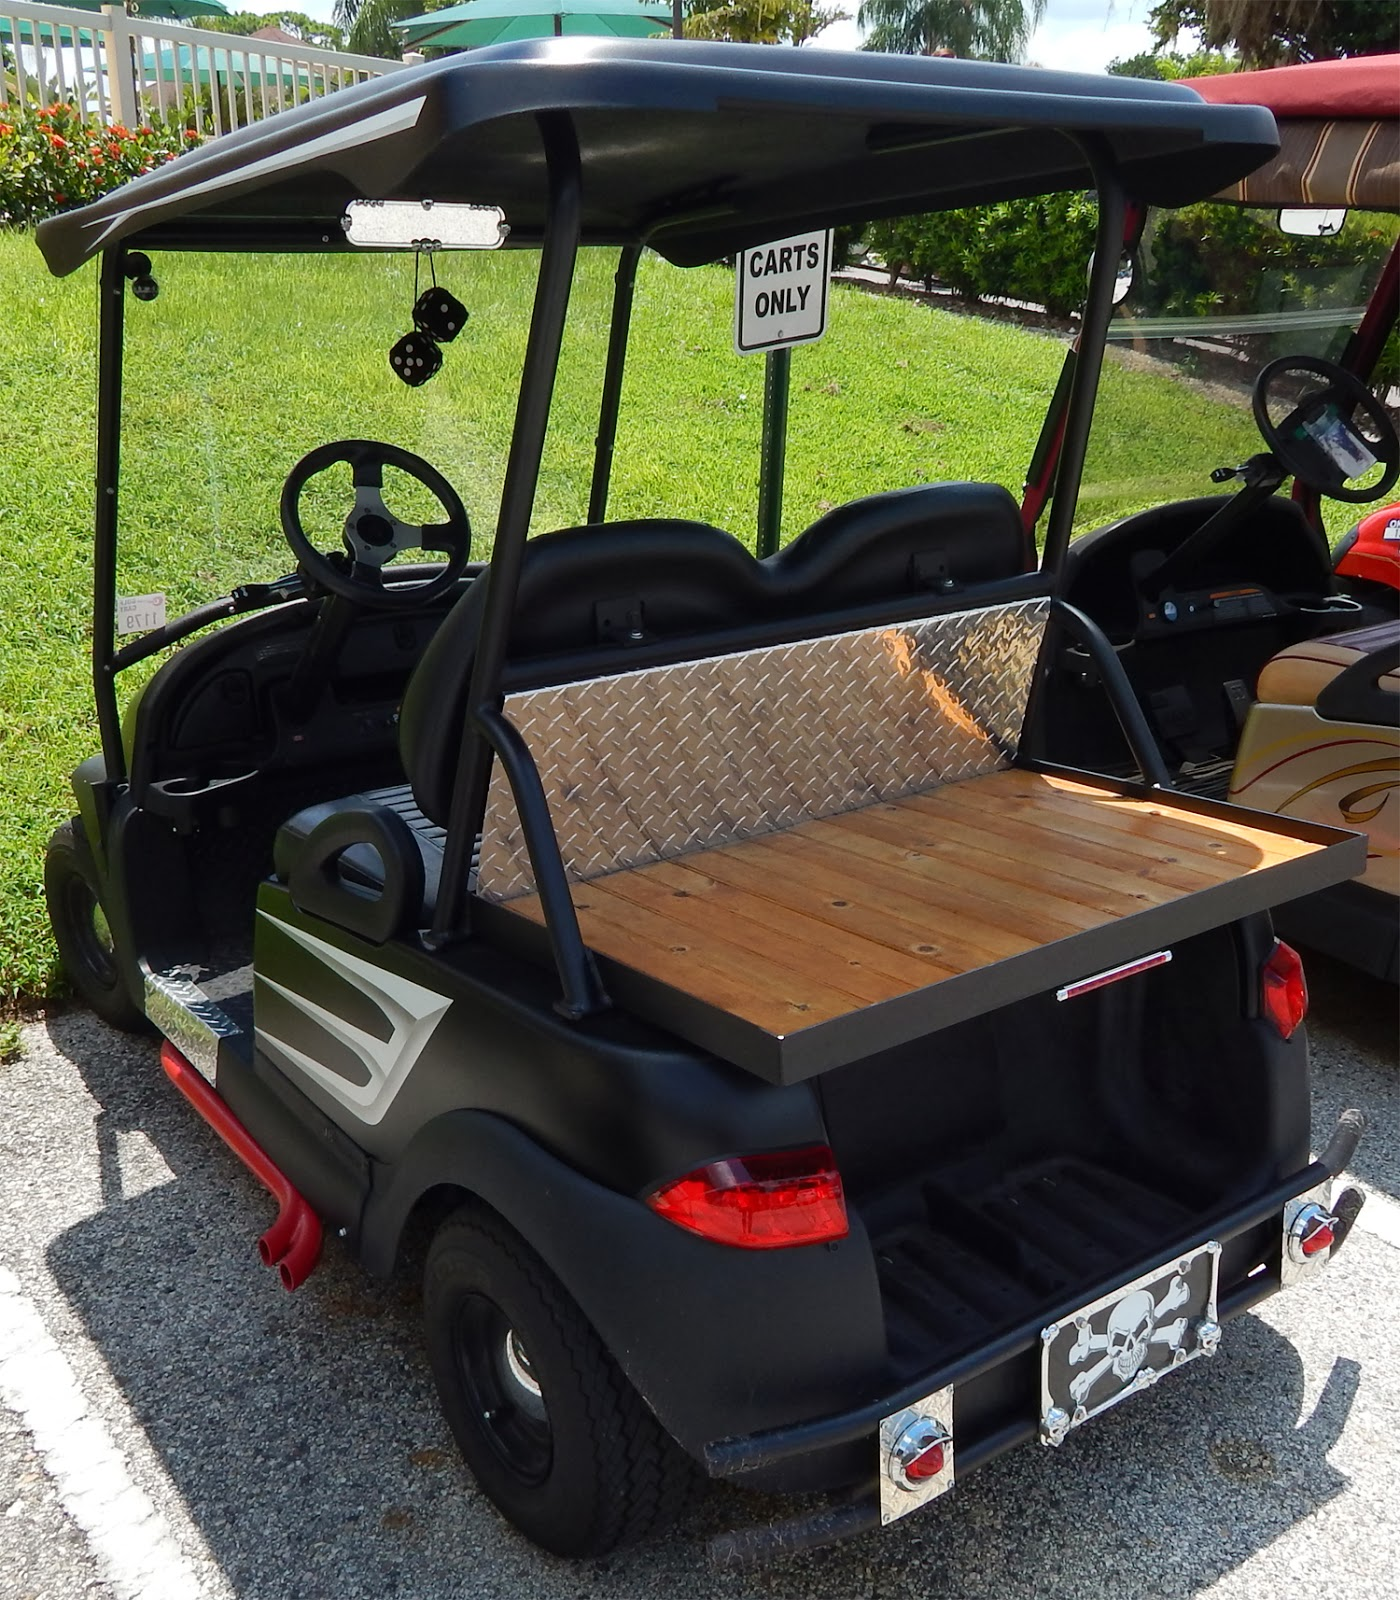 Low Rider Pitch Fork themed i2 Precedent Signature Edition Club Car on golf carts for disabled, golf carts for fire depts, golf carts vehicle,